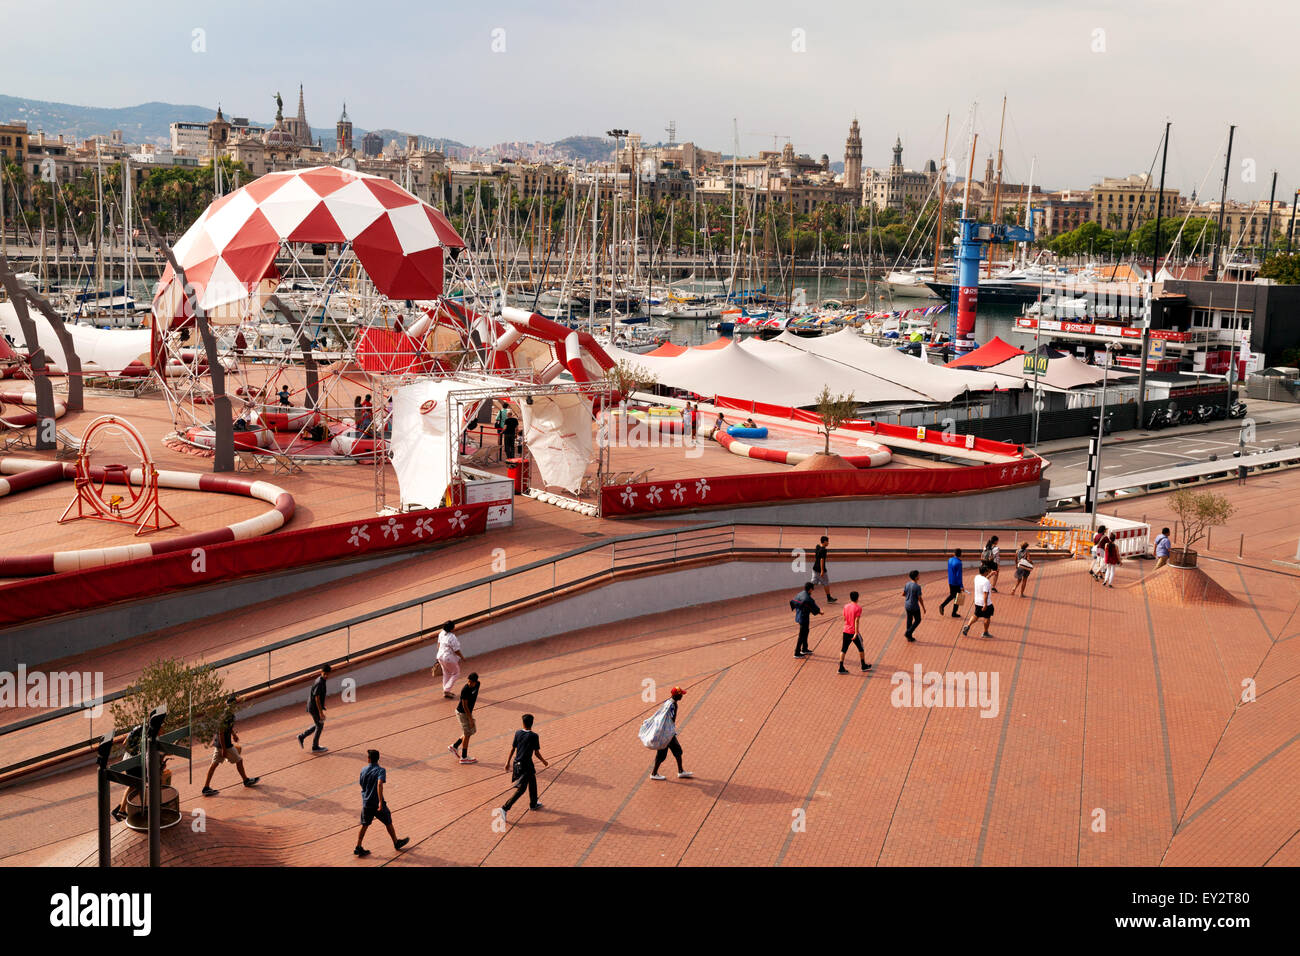 Outdoor exercise and gym area set up at Port Vell, Barcelona, Spain Europe - Stock Image